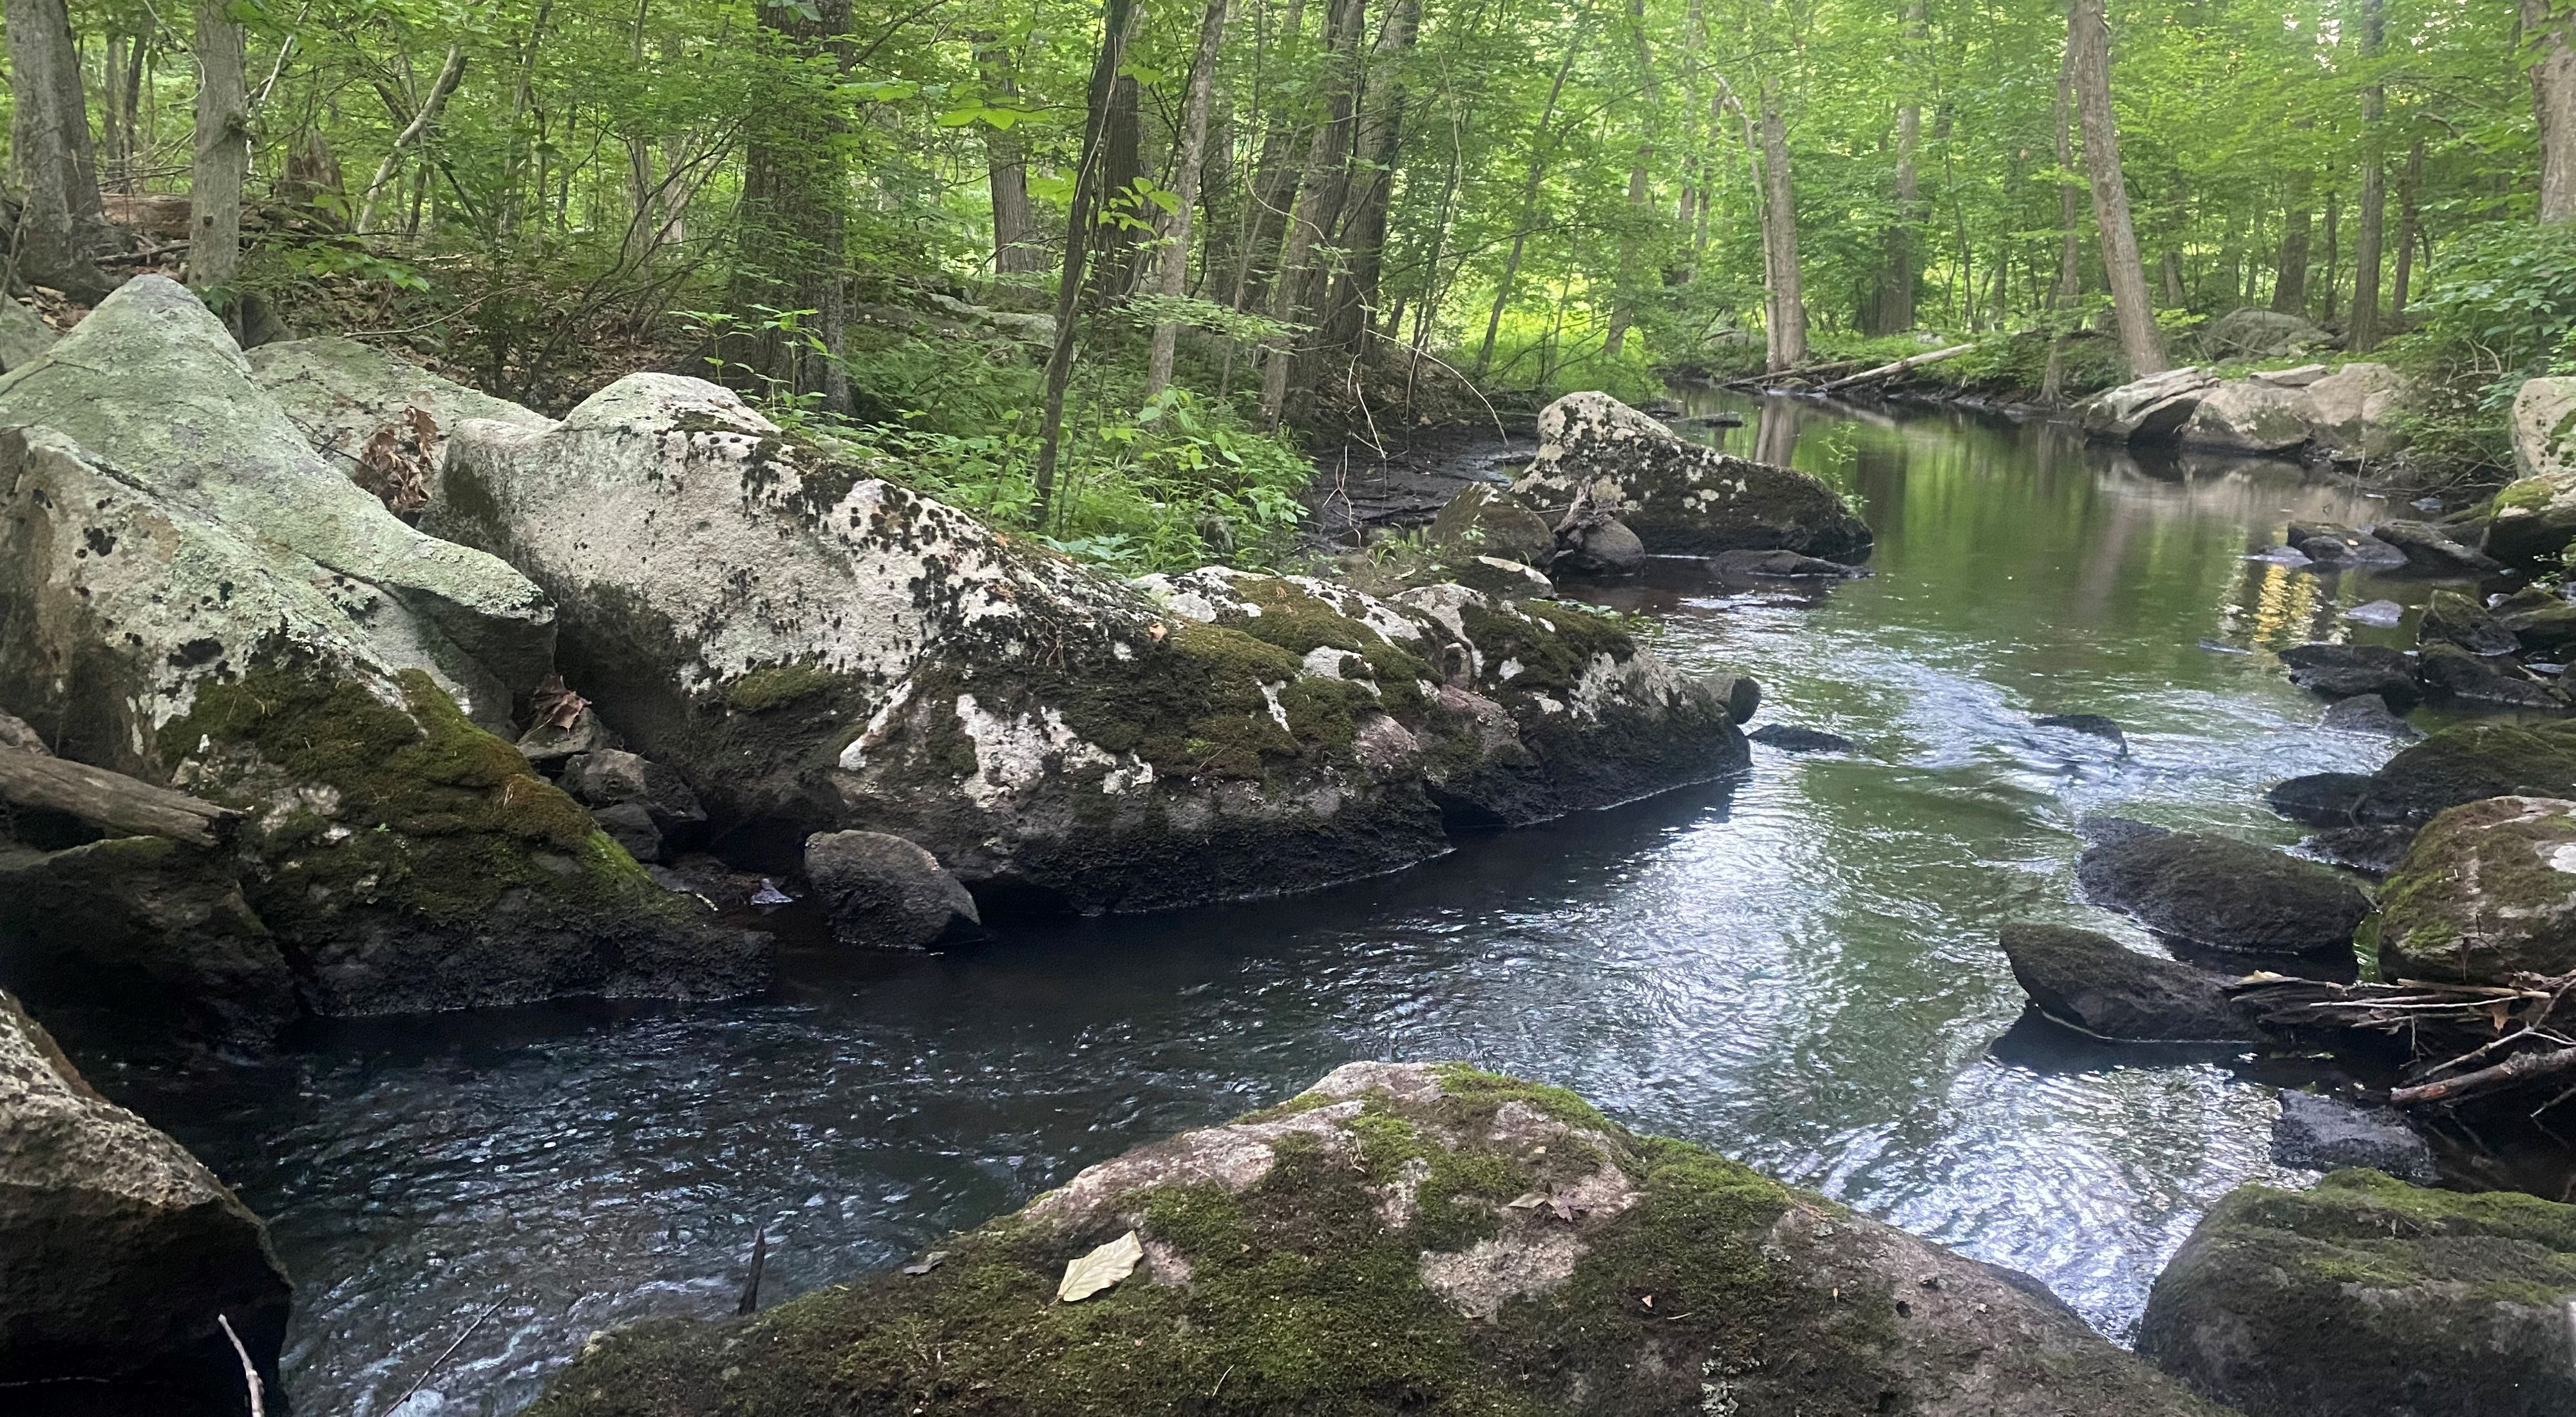 A small river flows under a green forest canopy. Gray granite boulders line both banks.